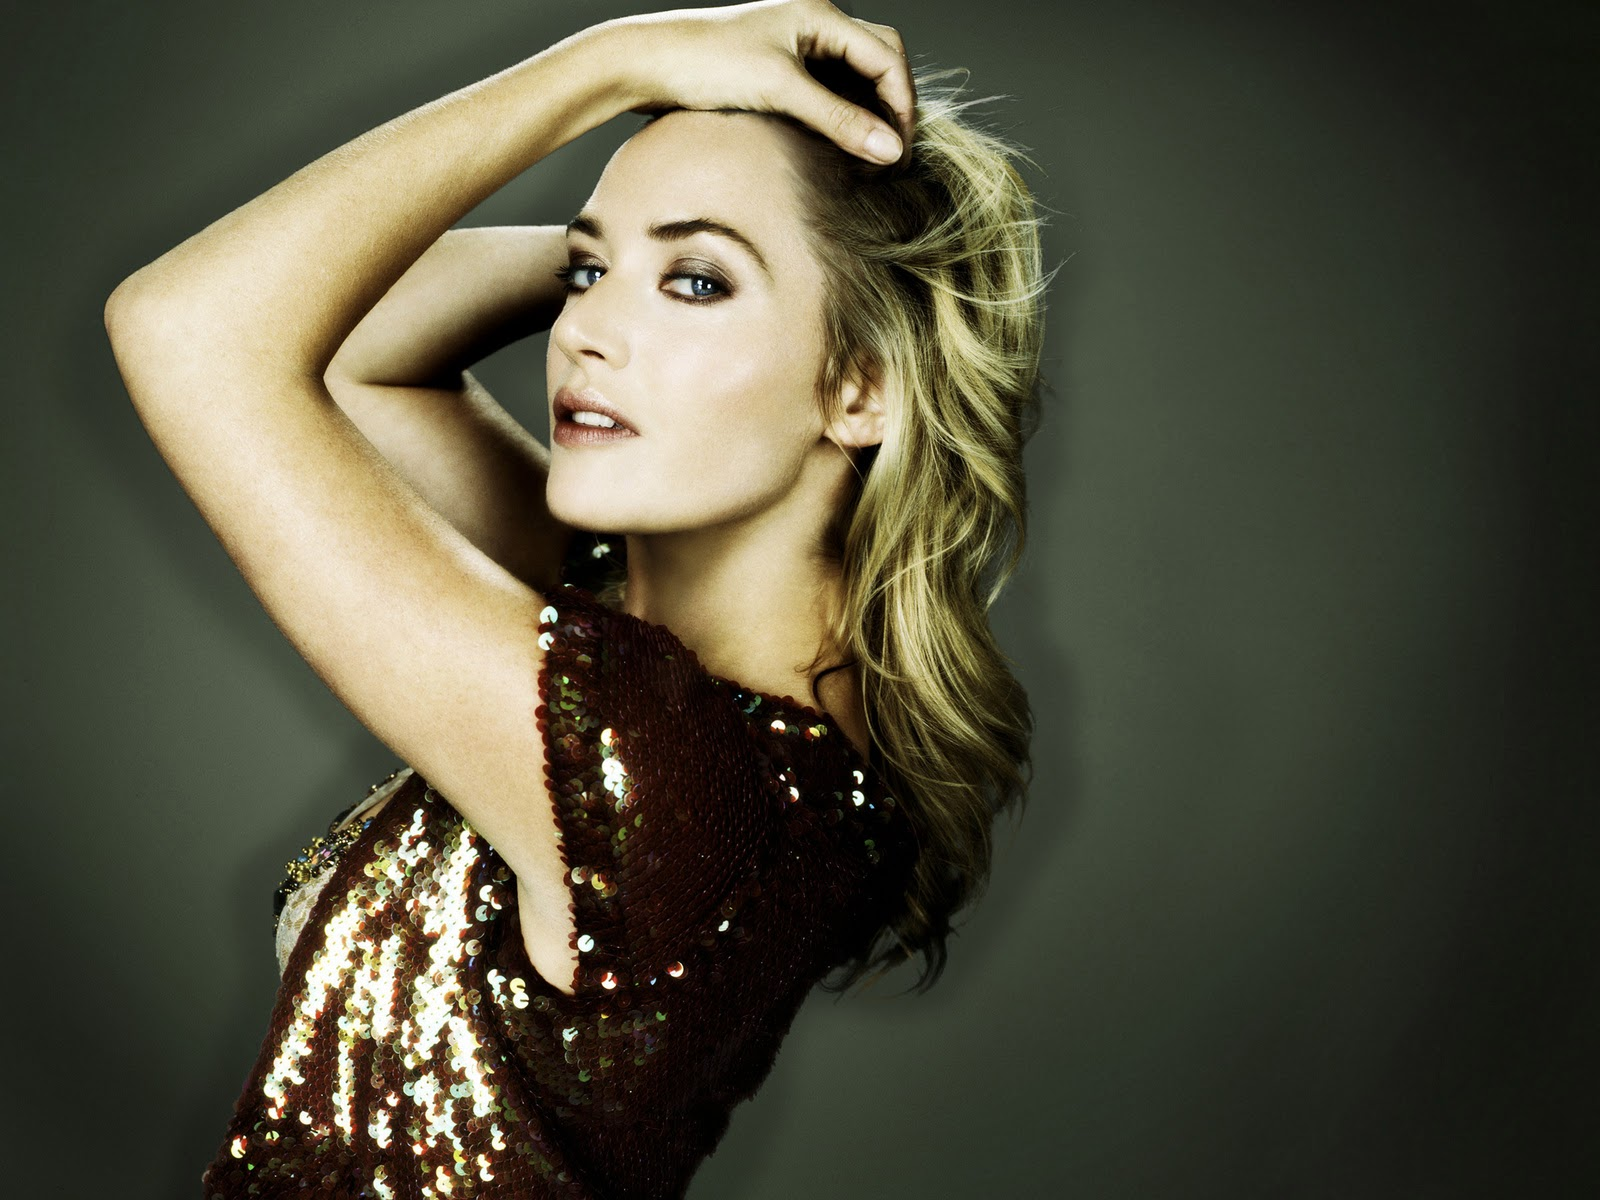 http://2.bp.blogspot.com/-ixNrFp09nAw/TooiMREgx-I/AAAAAAAAGHU/VgTRM5VhwdE/s1600/Kate+Winslepics-hairstyles-Kate+Winslet+hot-titanic-wallpapers-gallery+%252826%2529.jpg